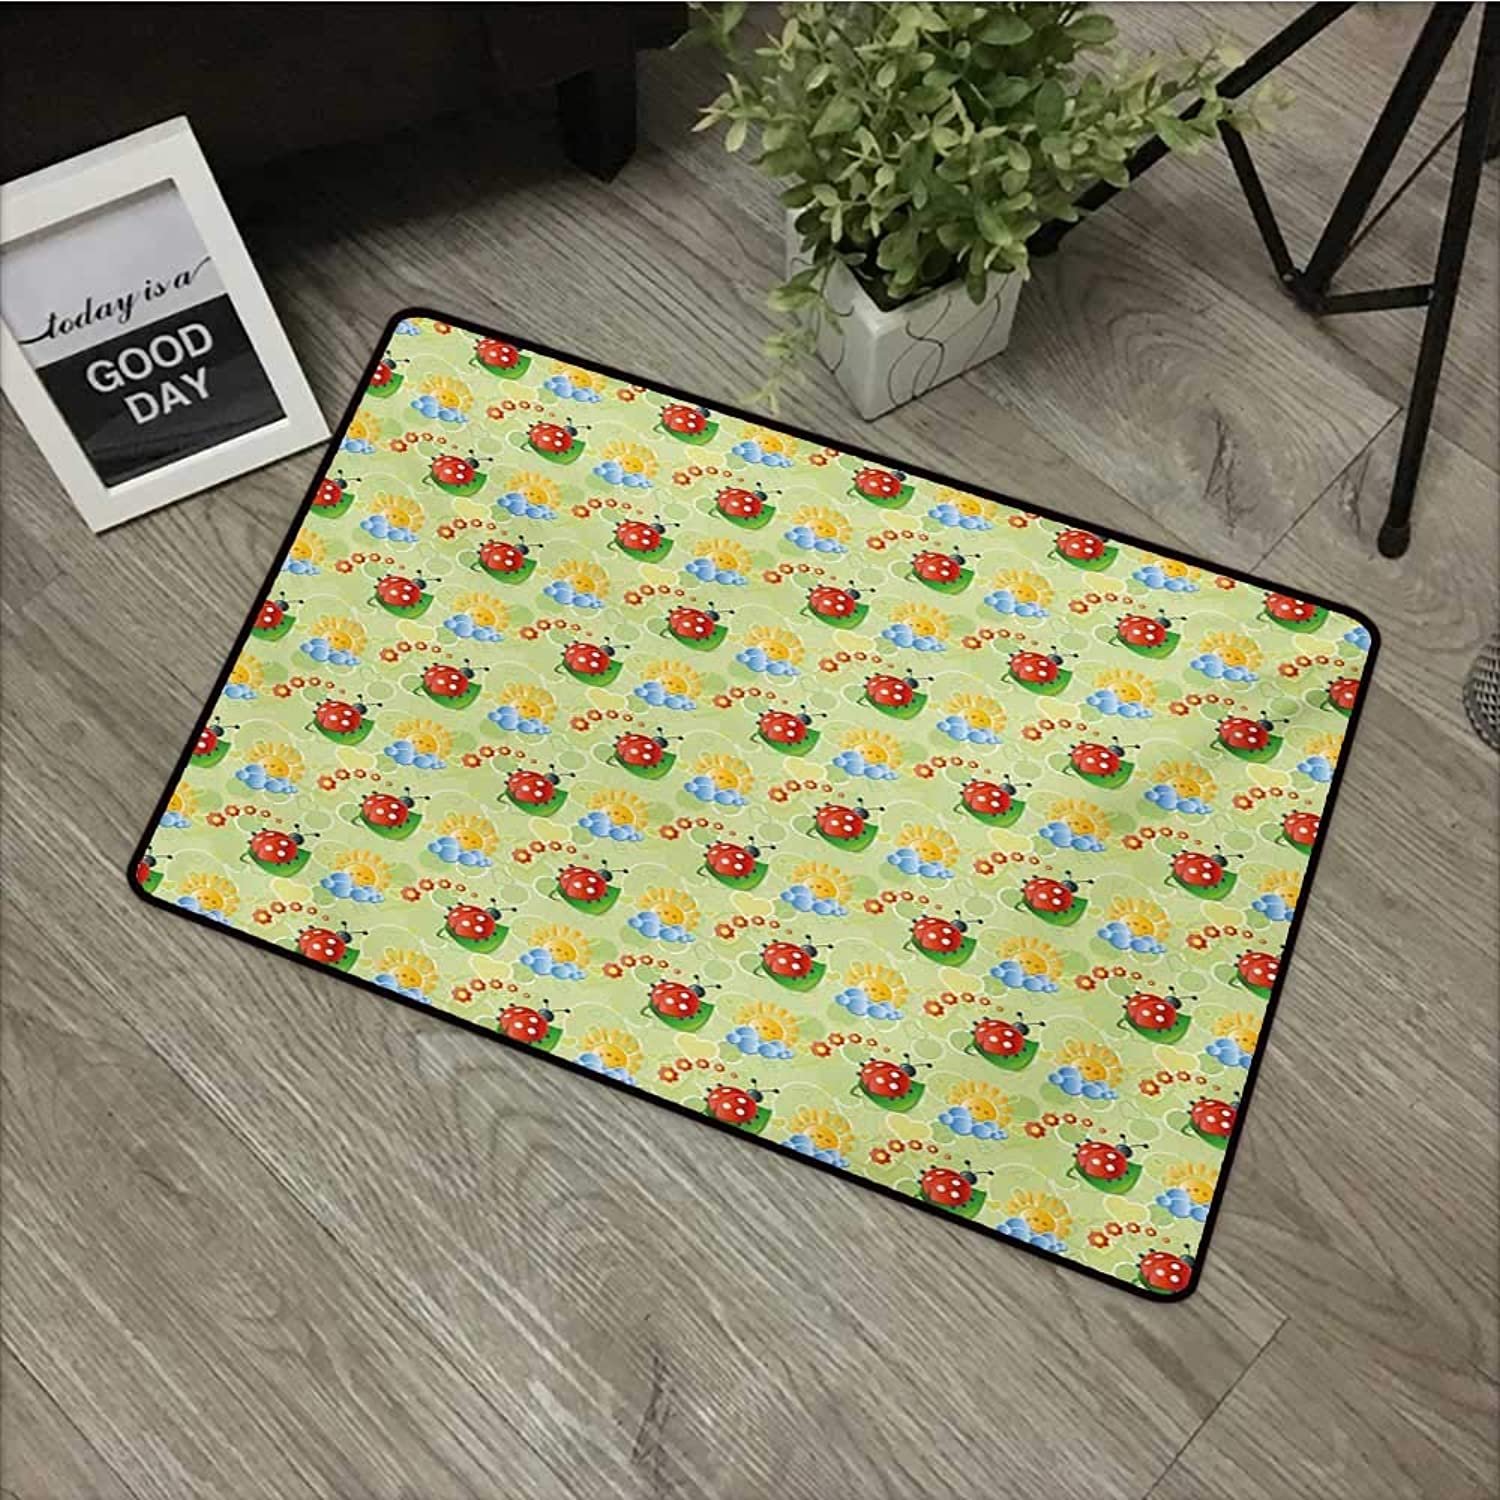 Bathroom Door mat W35 x L59 INCH Nursery,Happy Smiling Sun with Flowers and Ladybugs Cute Image Nature Inspired Drawing,Multicolor Easy to Clean, no Deformation, no Fading Non-Slip Door Mat Carpet